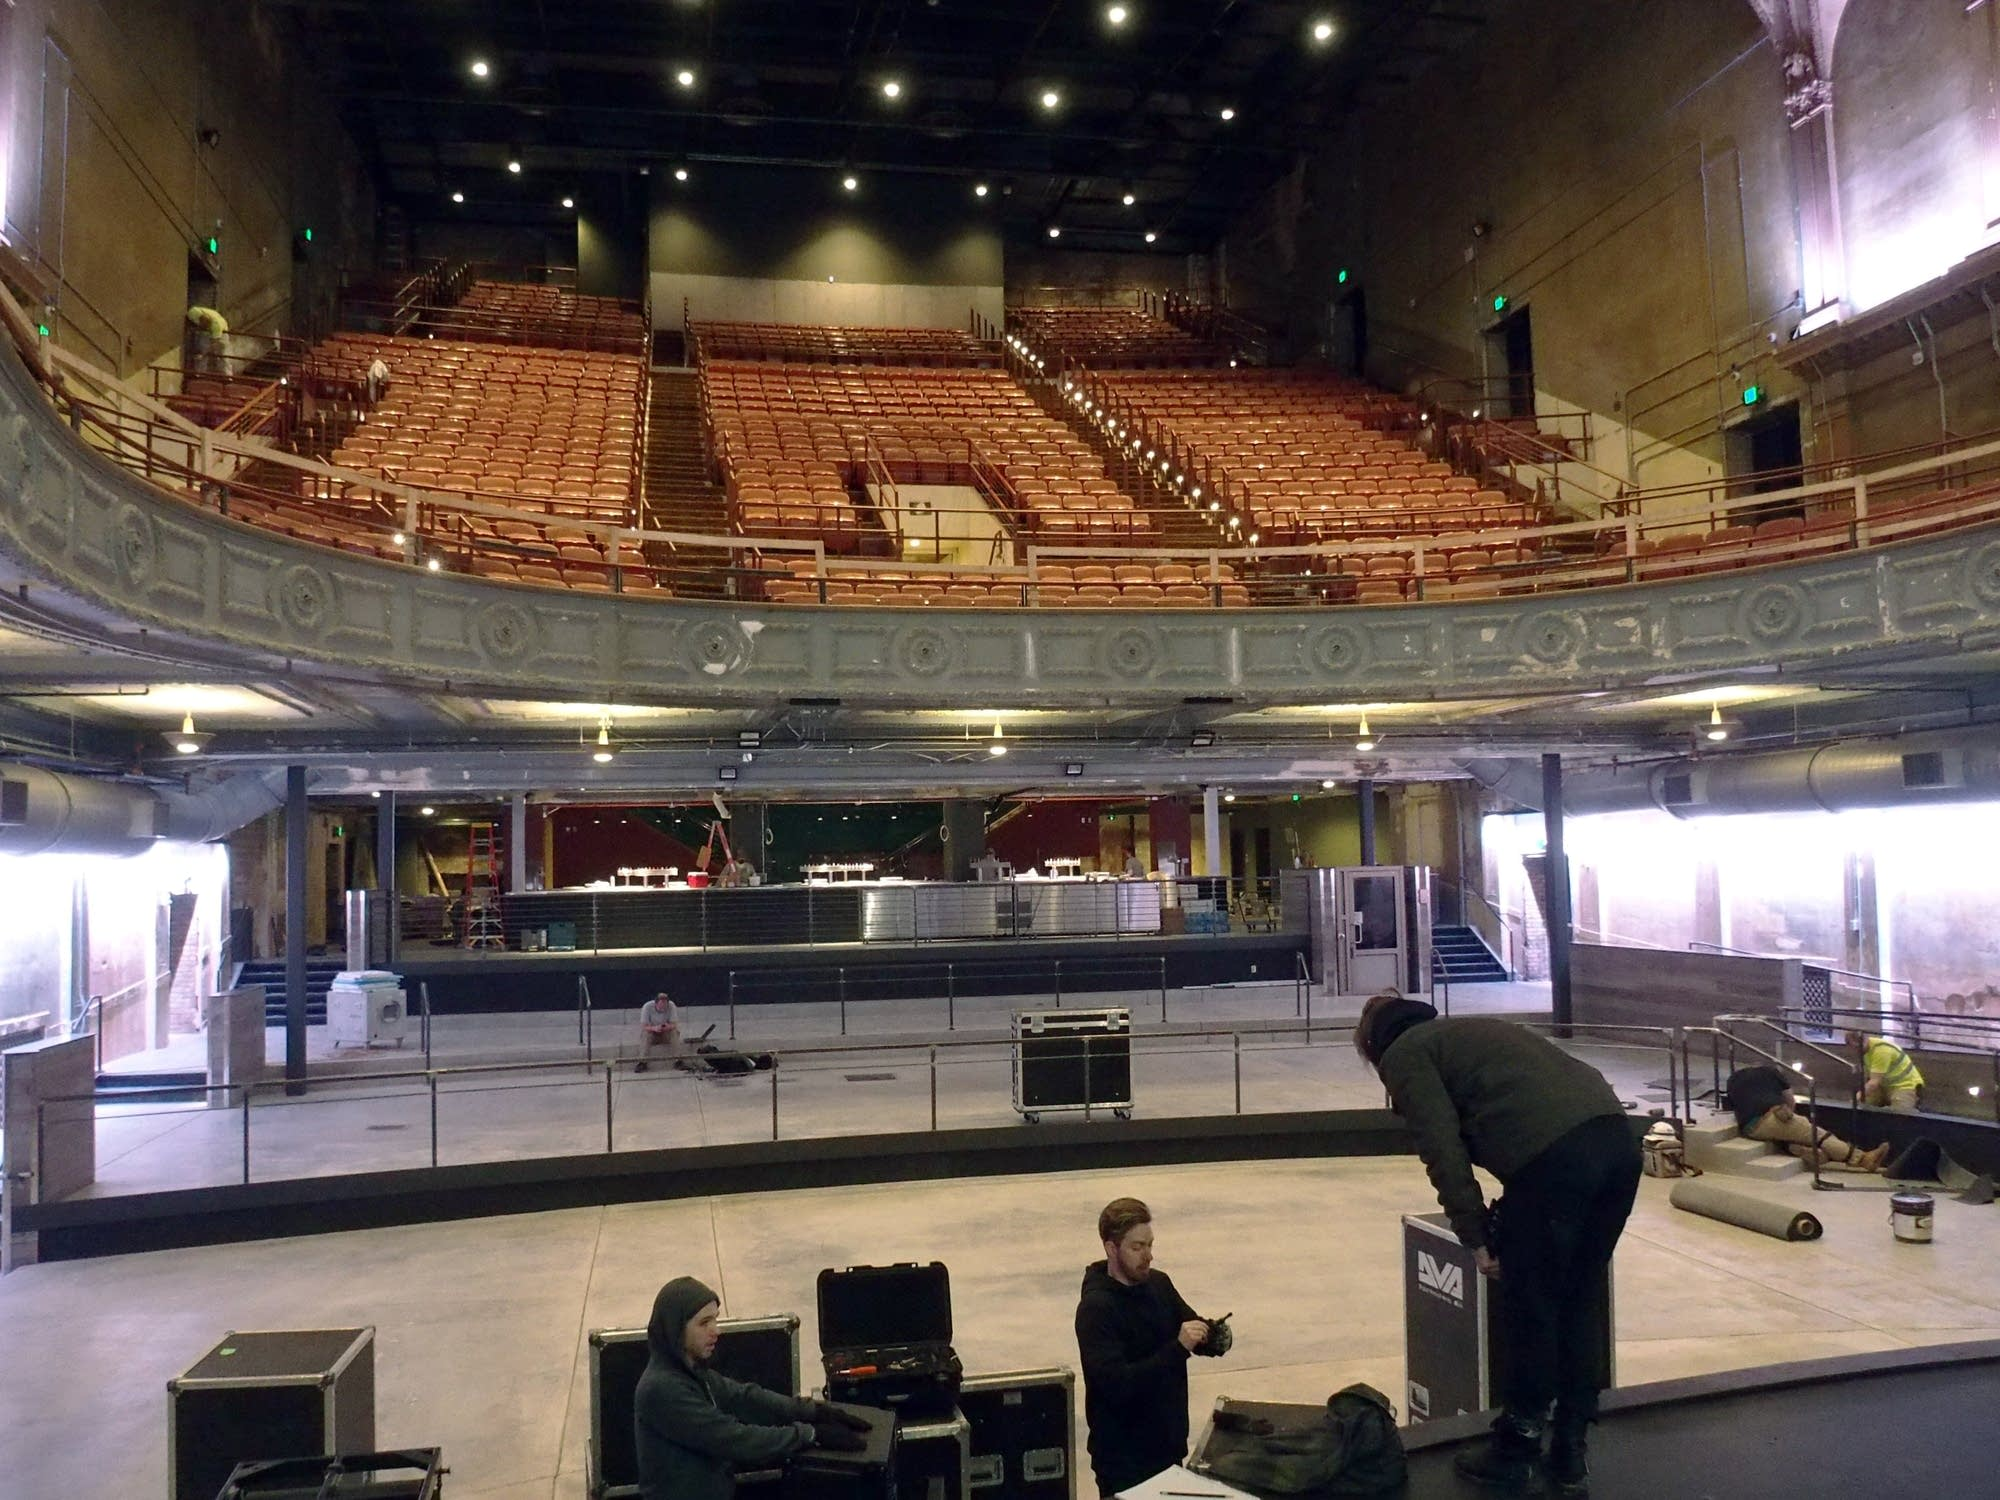 View from the stage of the newly revamped Palace Theatre